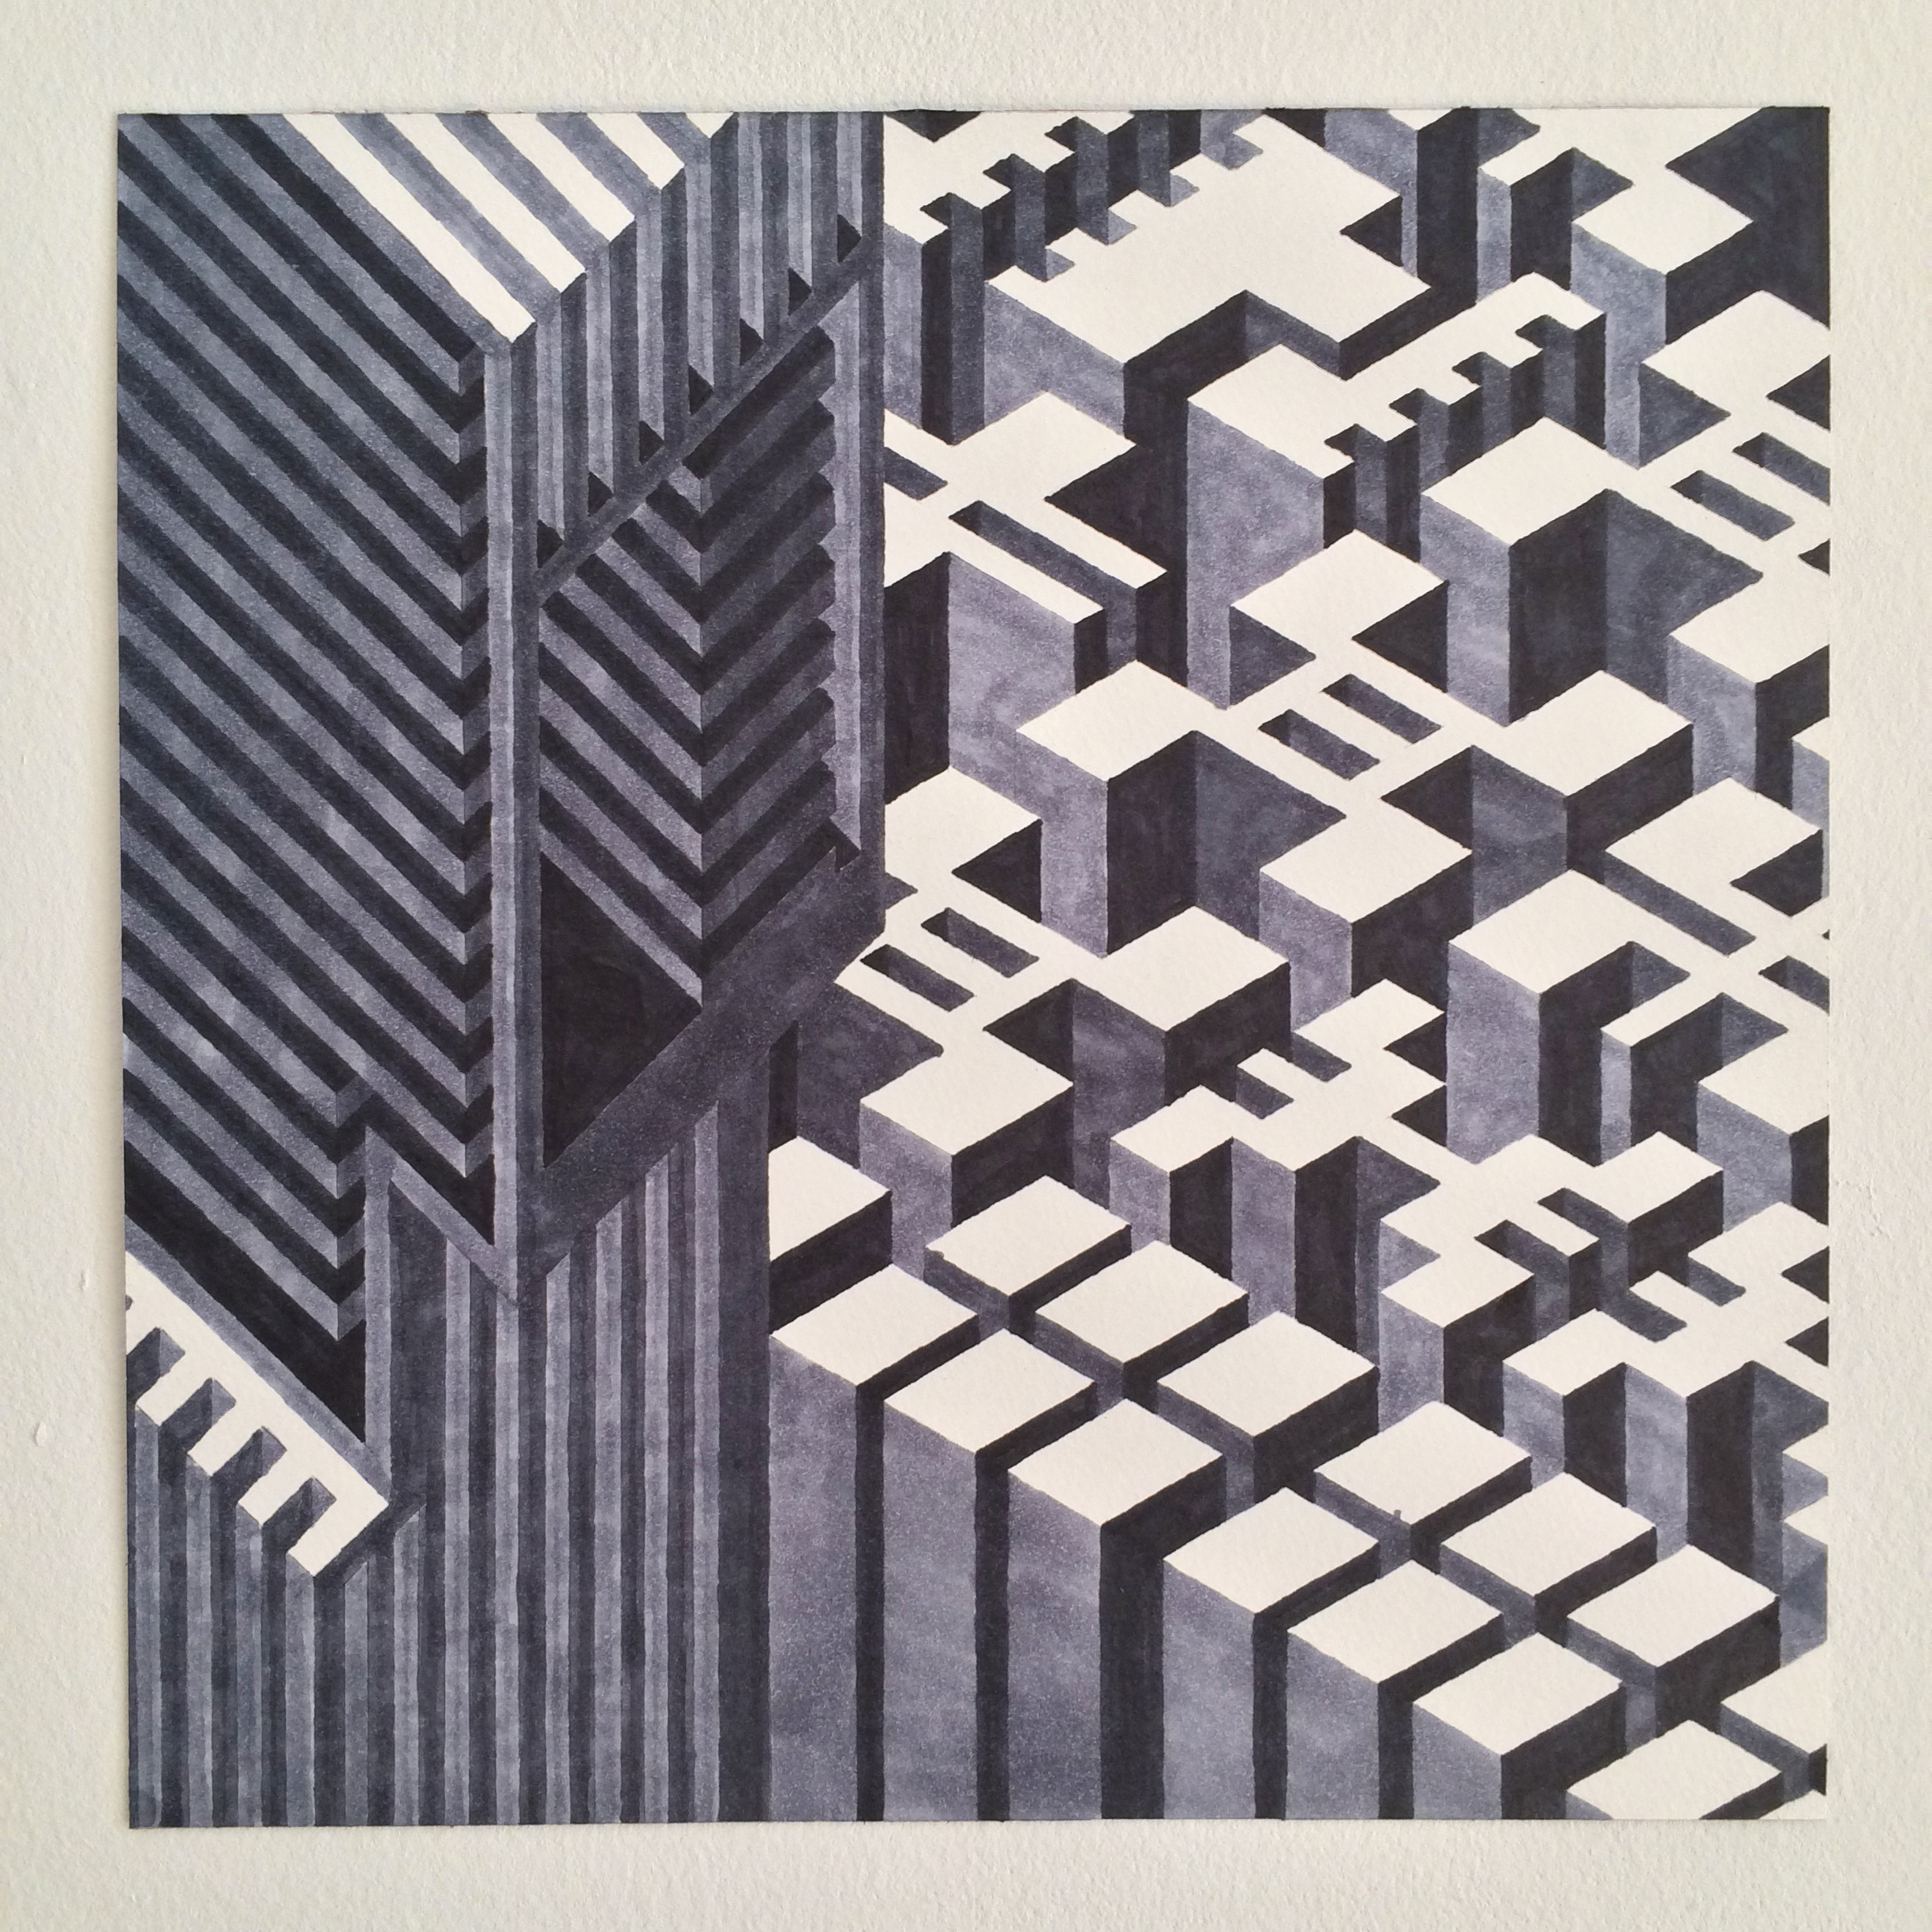 Untitled (aberrant), 2015  marker graphite on watercolor paper  12 x 12 inches